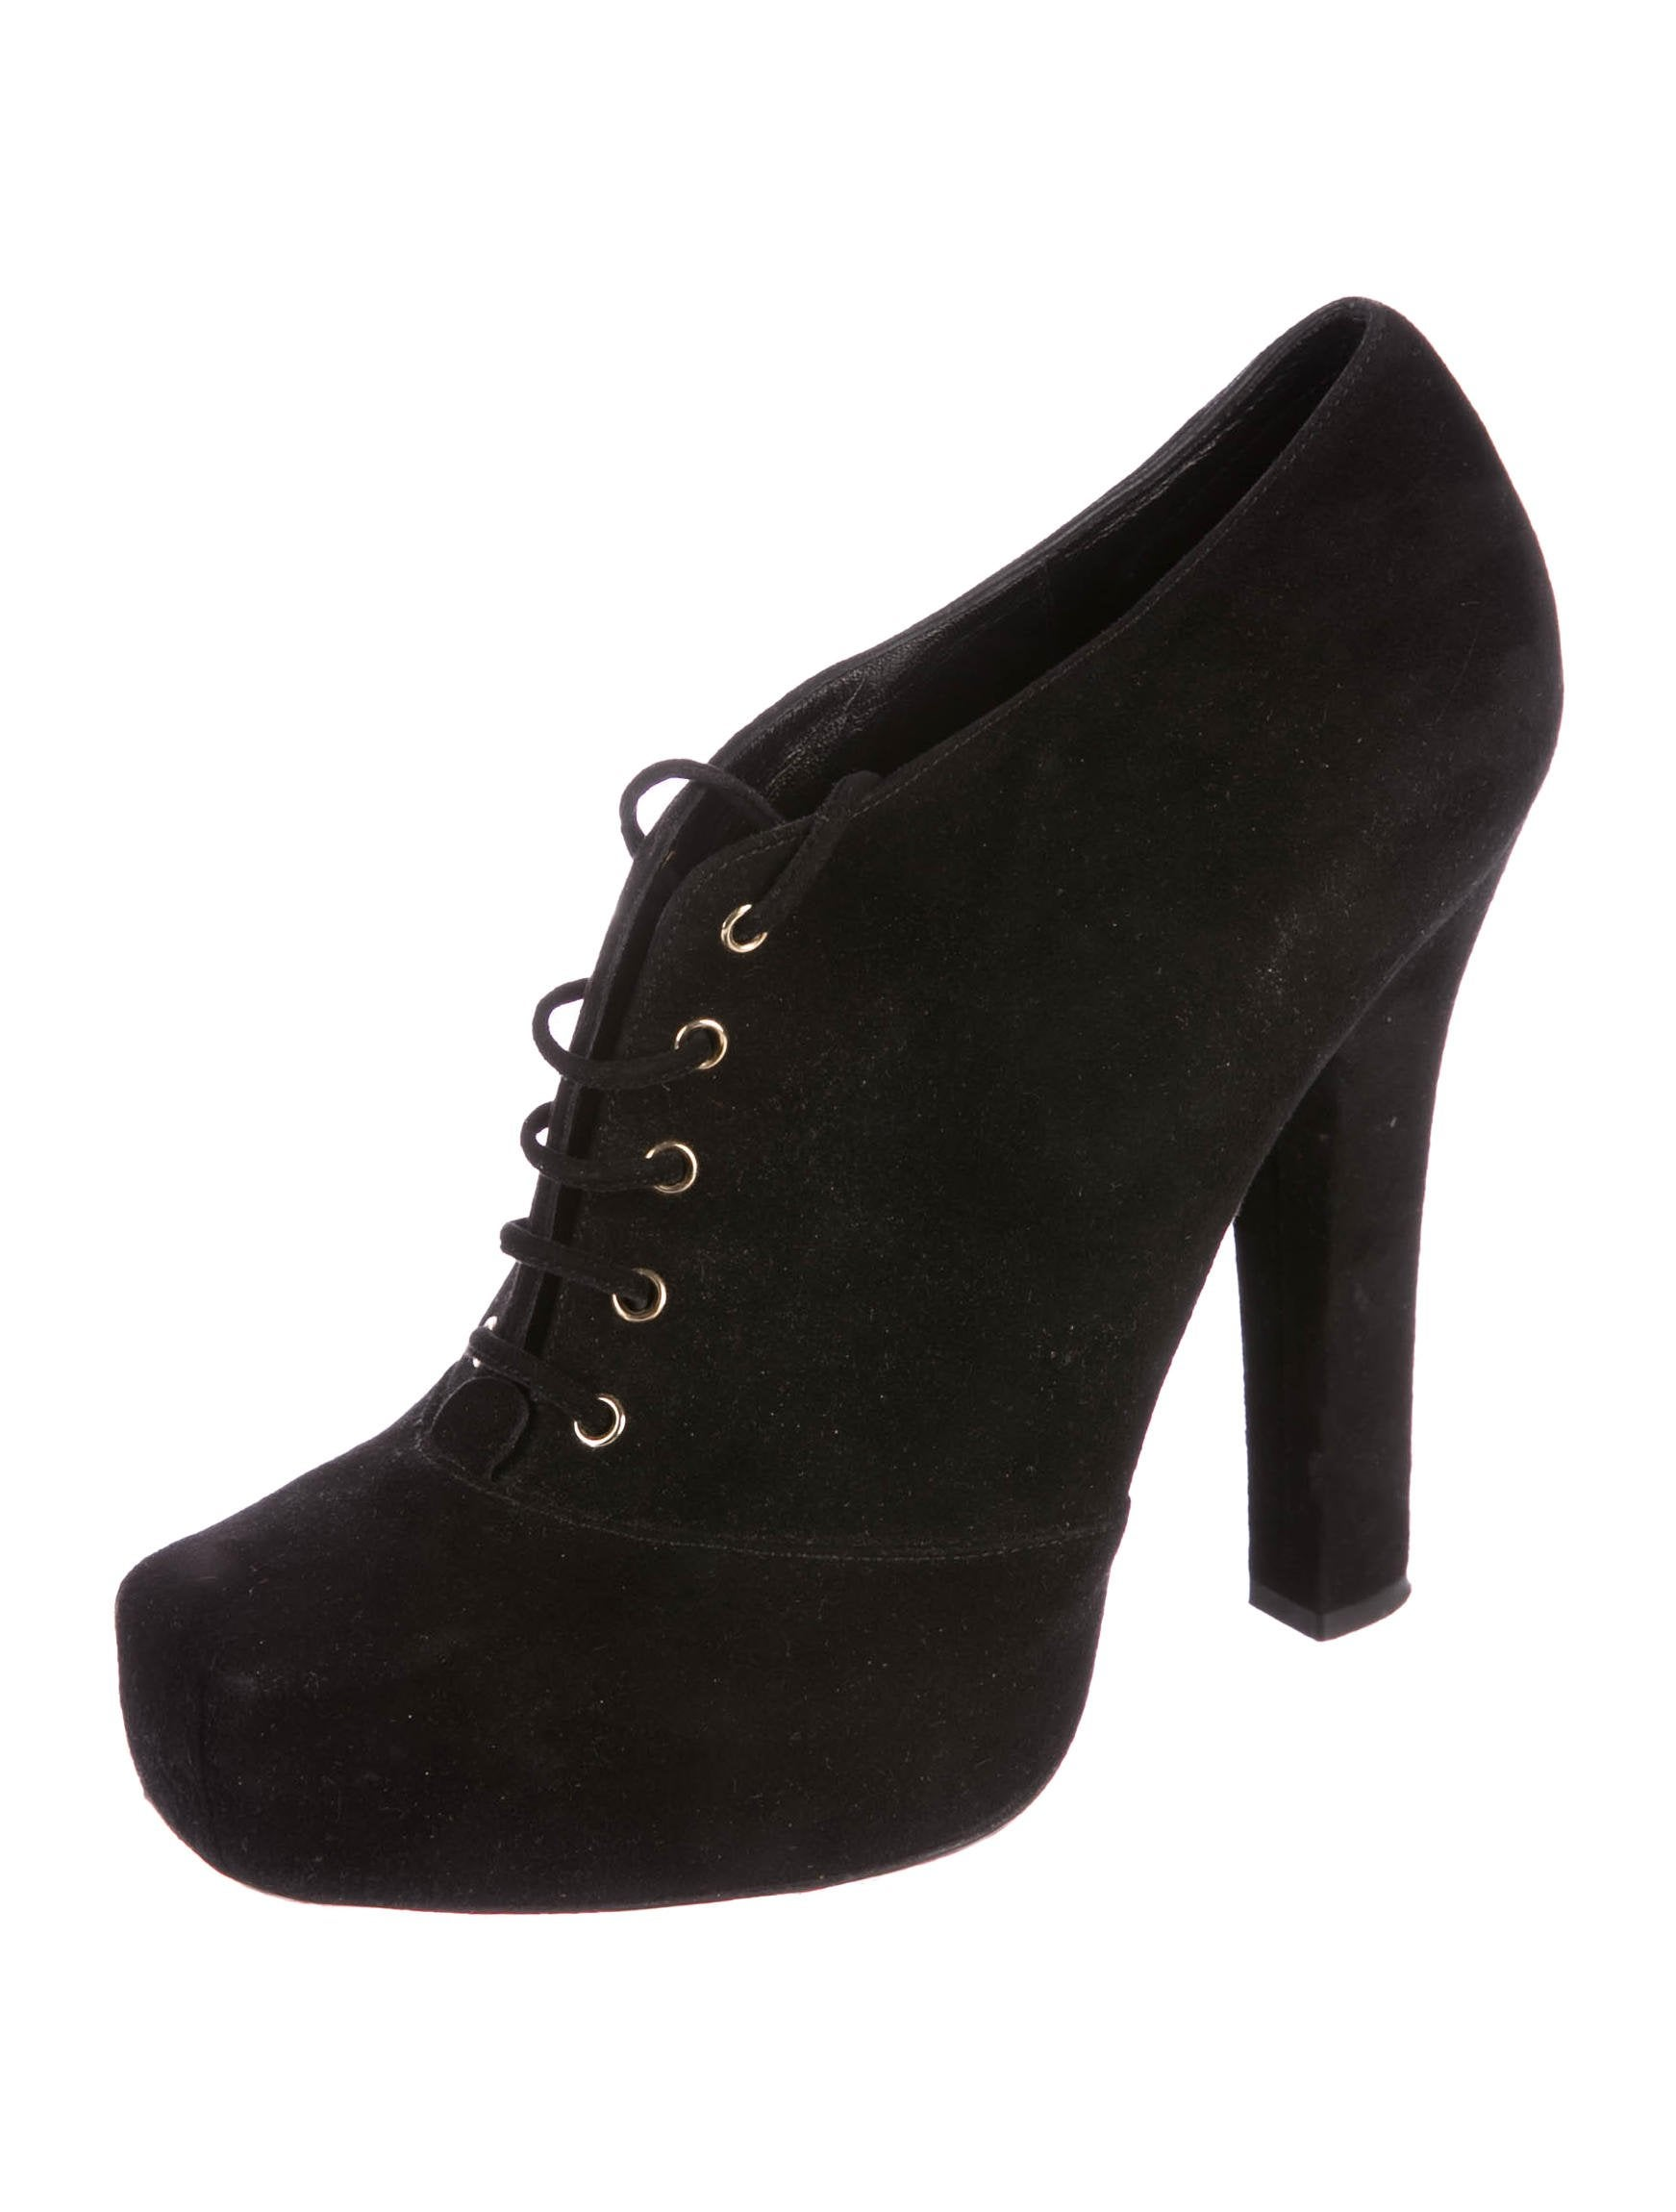 Dolce & Gabbana Square-Toe Platform Booties outlet outlet official free shipping low shipping fee 3DbZqY5H